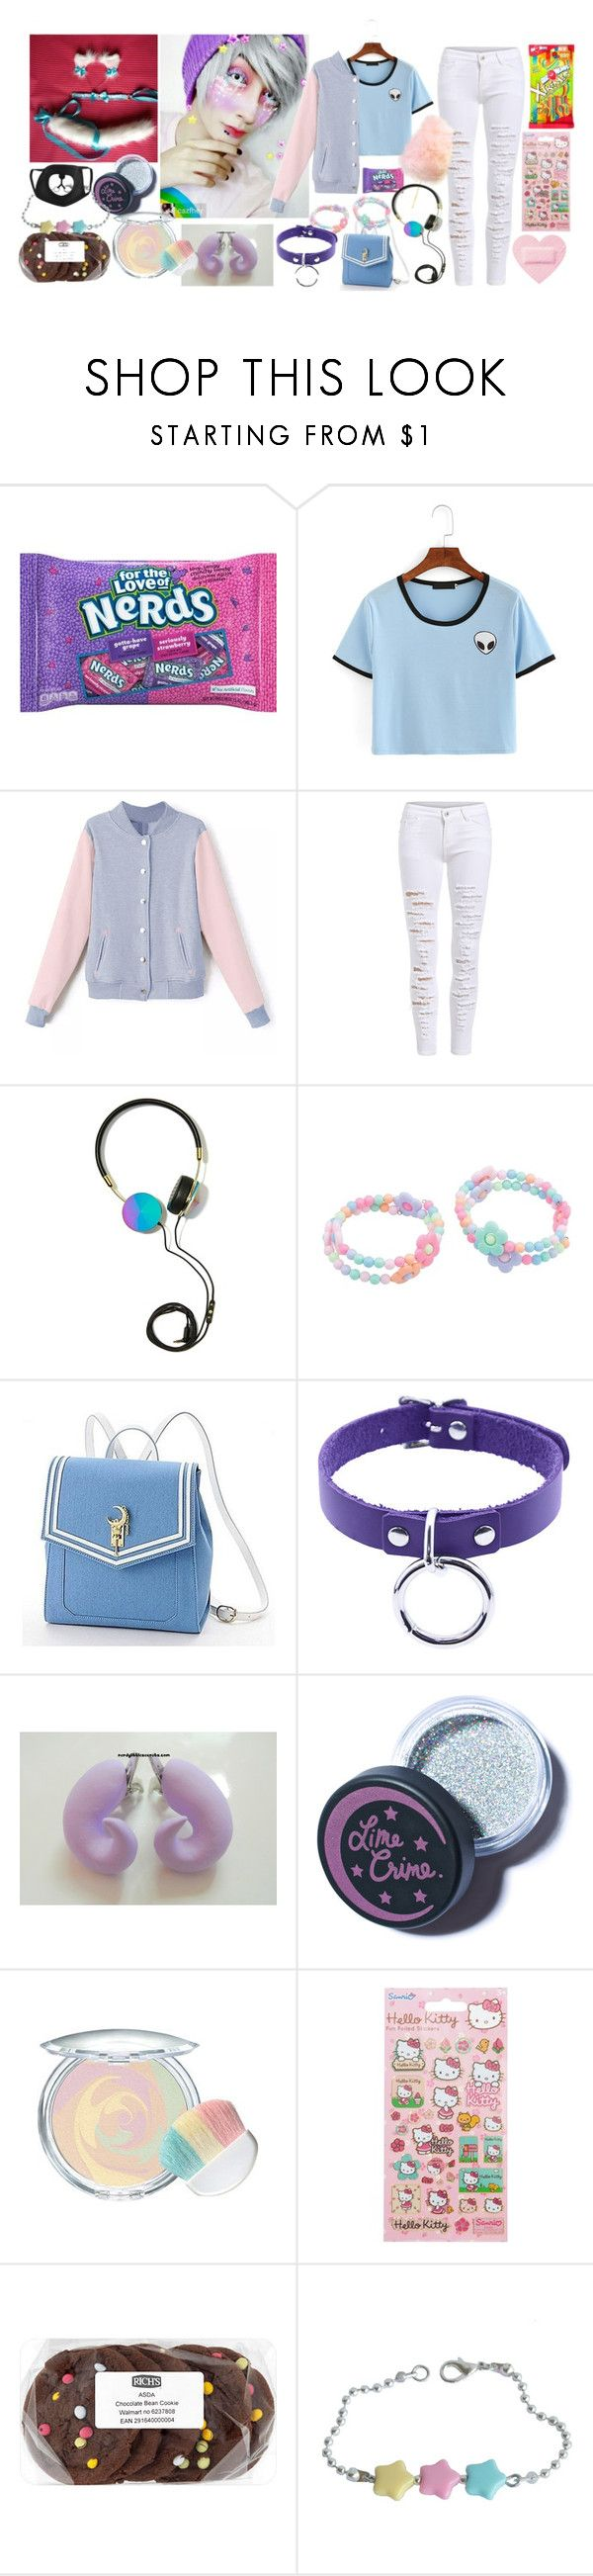 """Cotton (Team Sugar Rush)"" by ariagrimesqoutev ❤ liked on Polyvore featuring beauty, Frends, Usagi, Lime Crime and Hello Kitty"